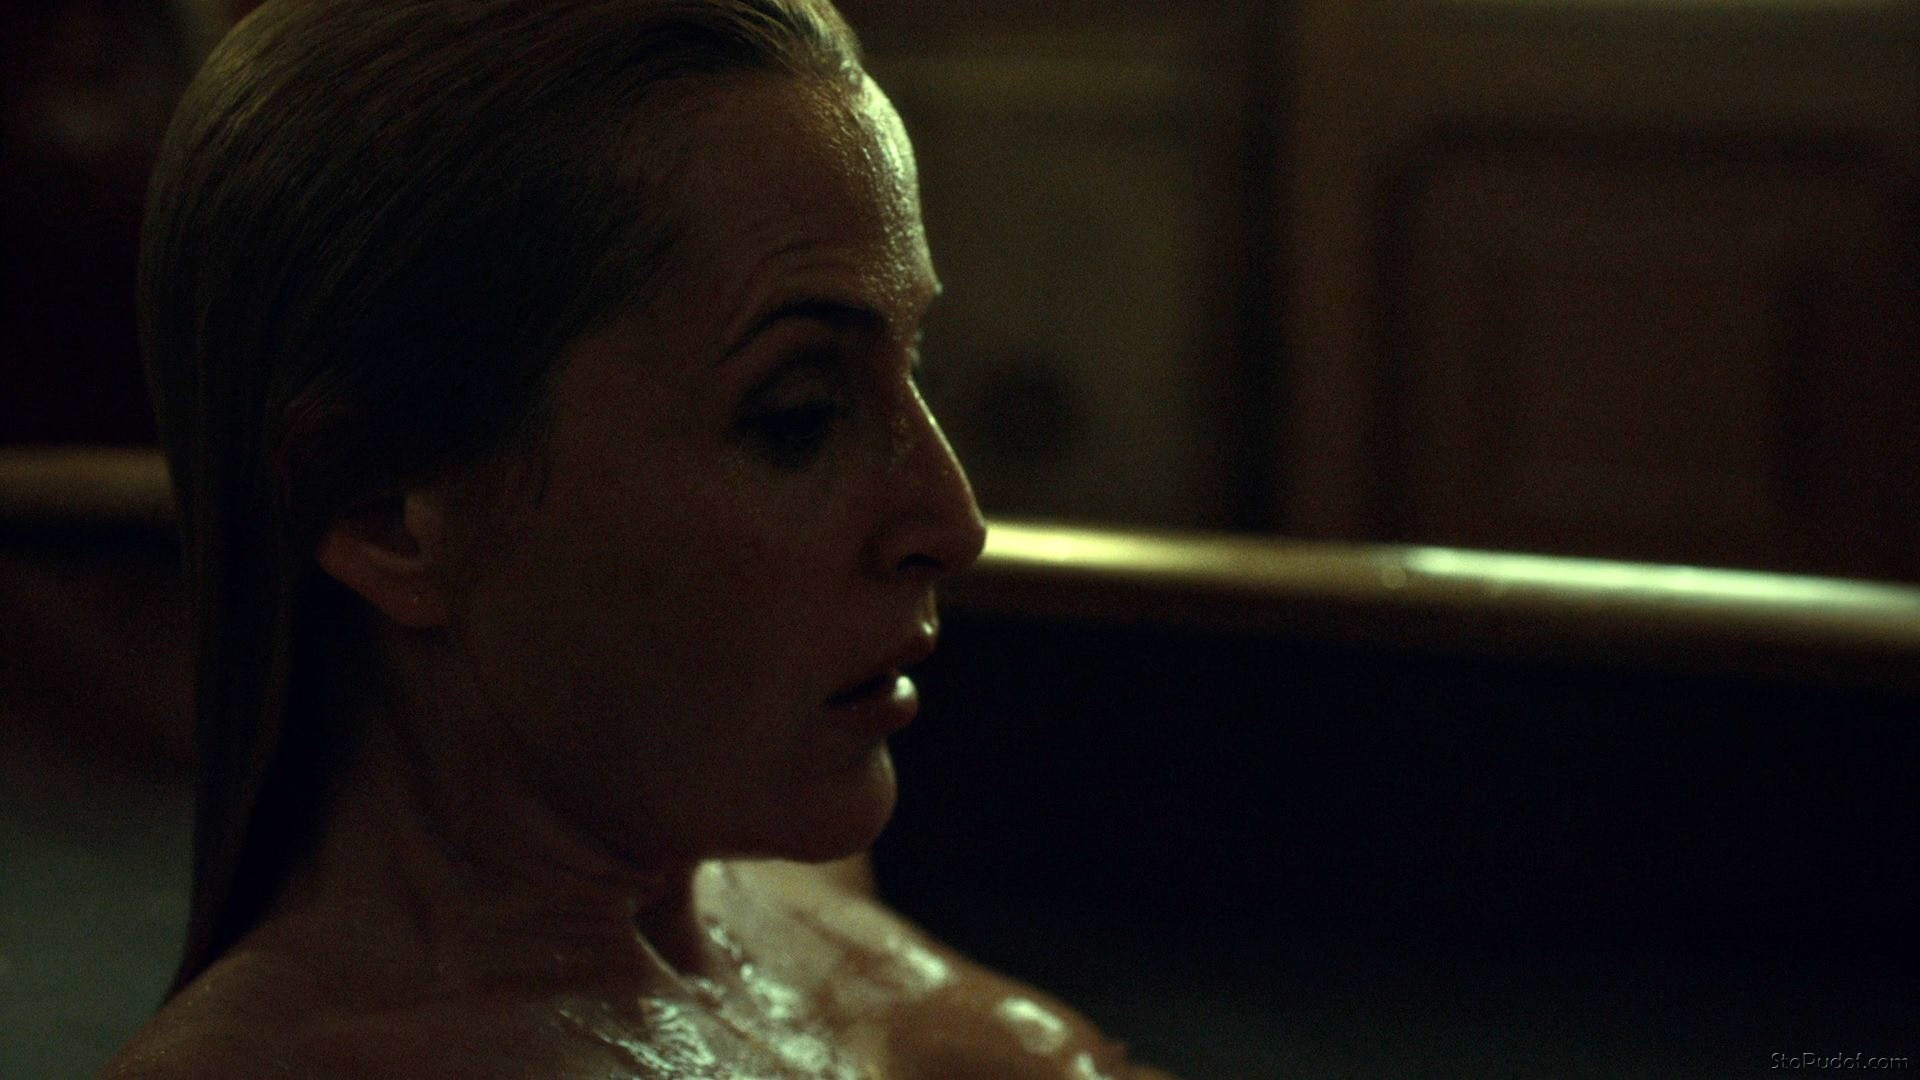 leaked pictures of Gillian Anderson naked - UkPhotoSafari